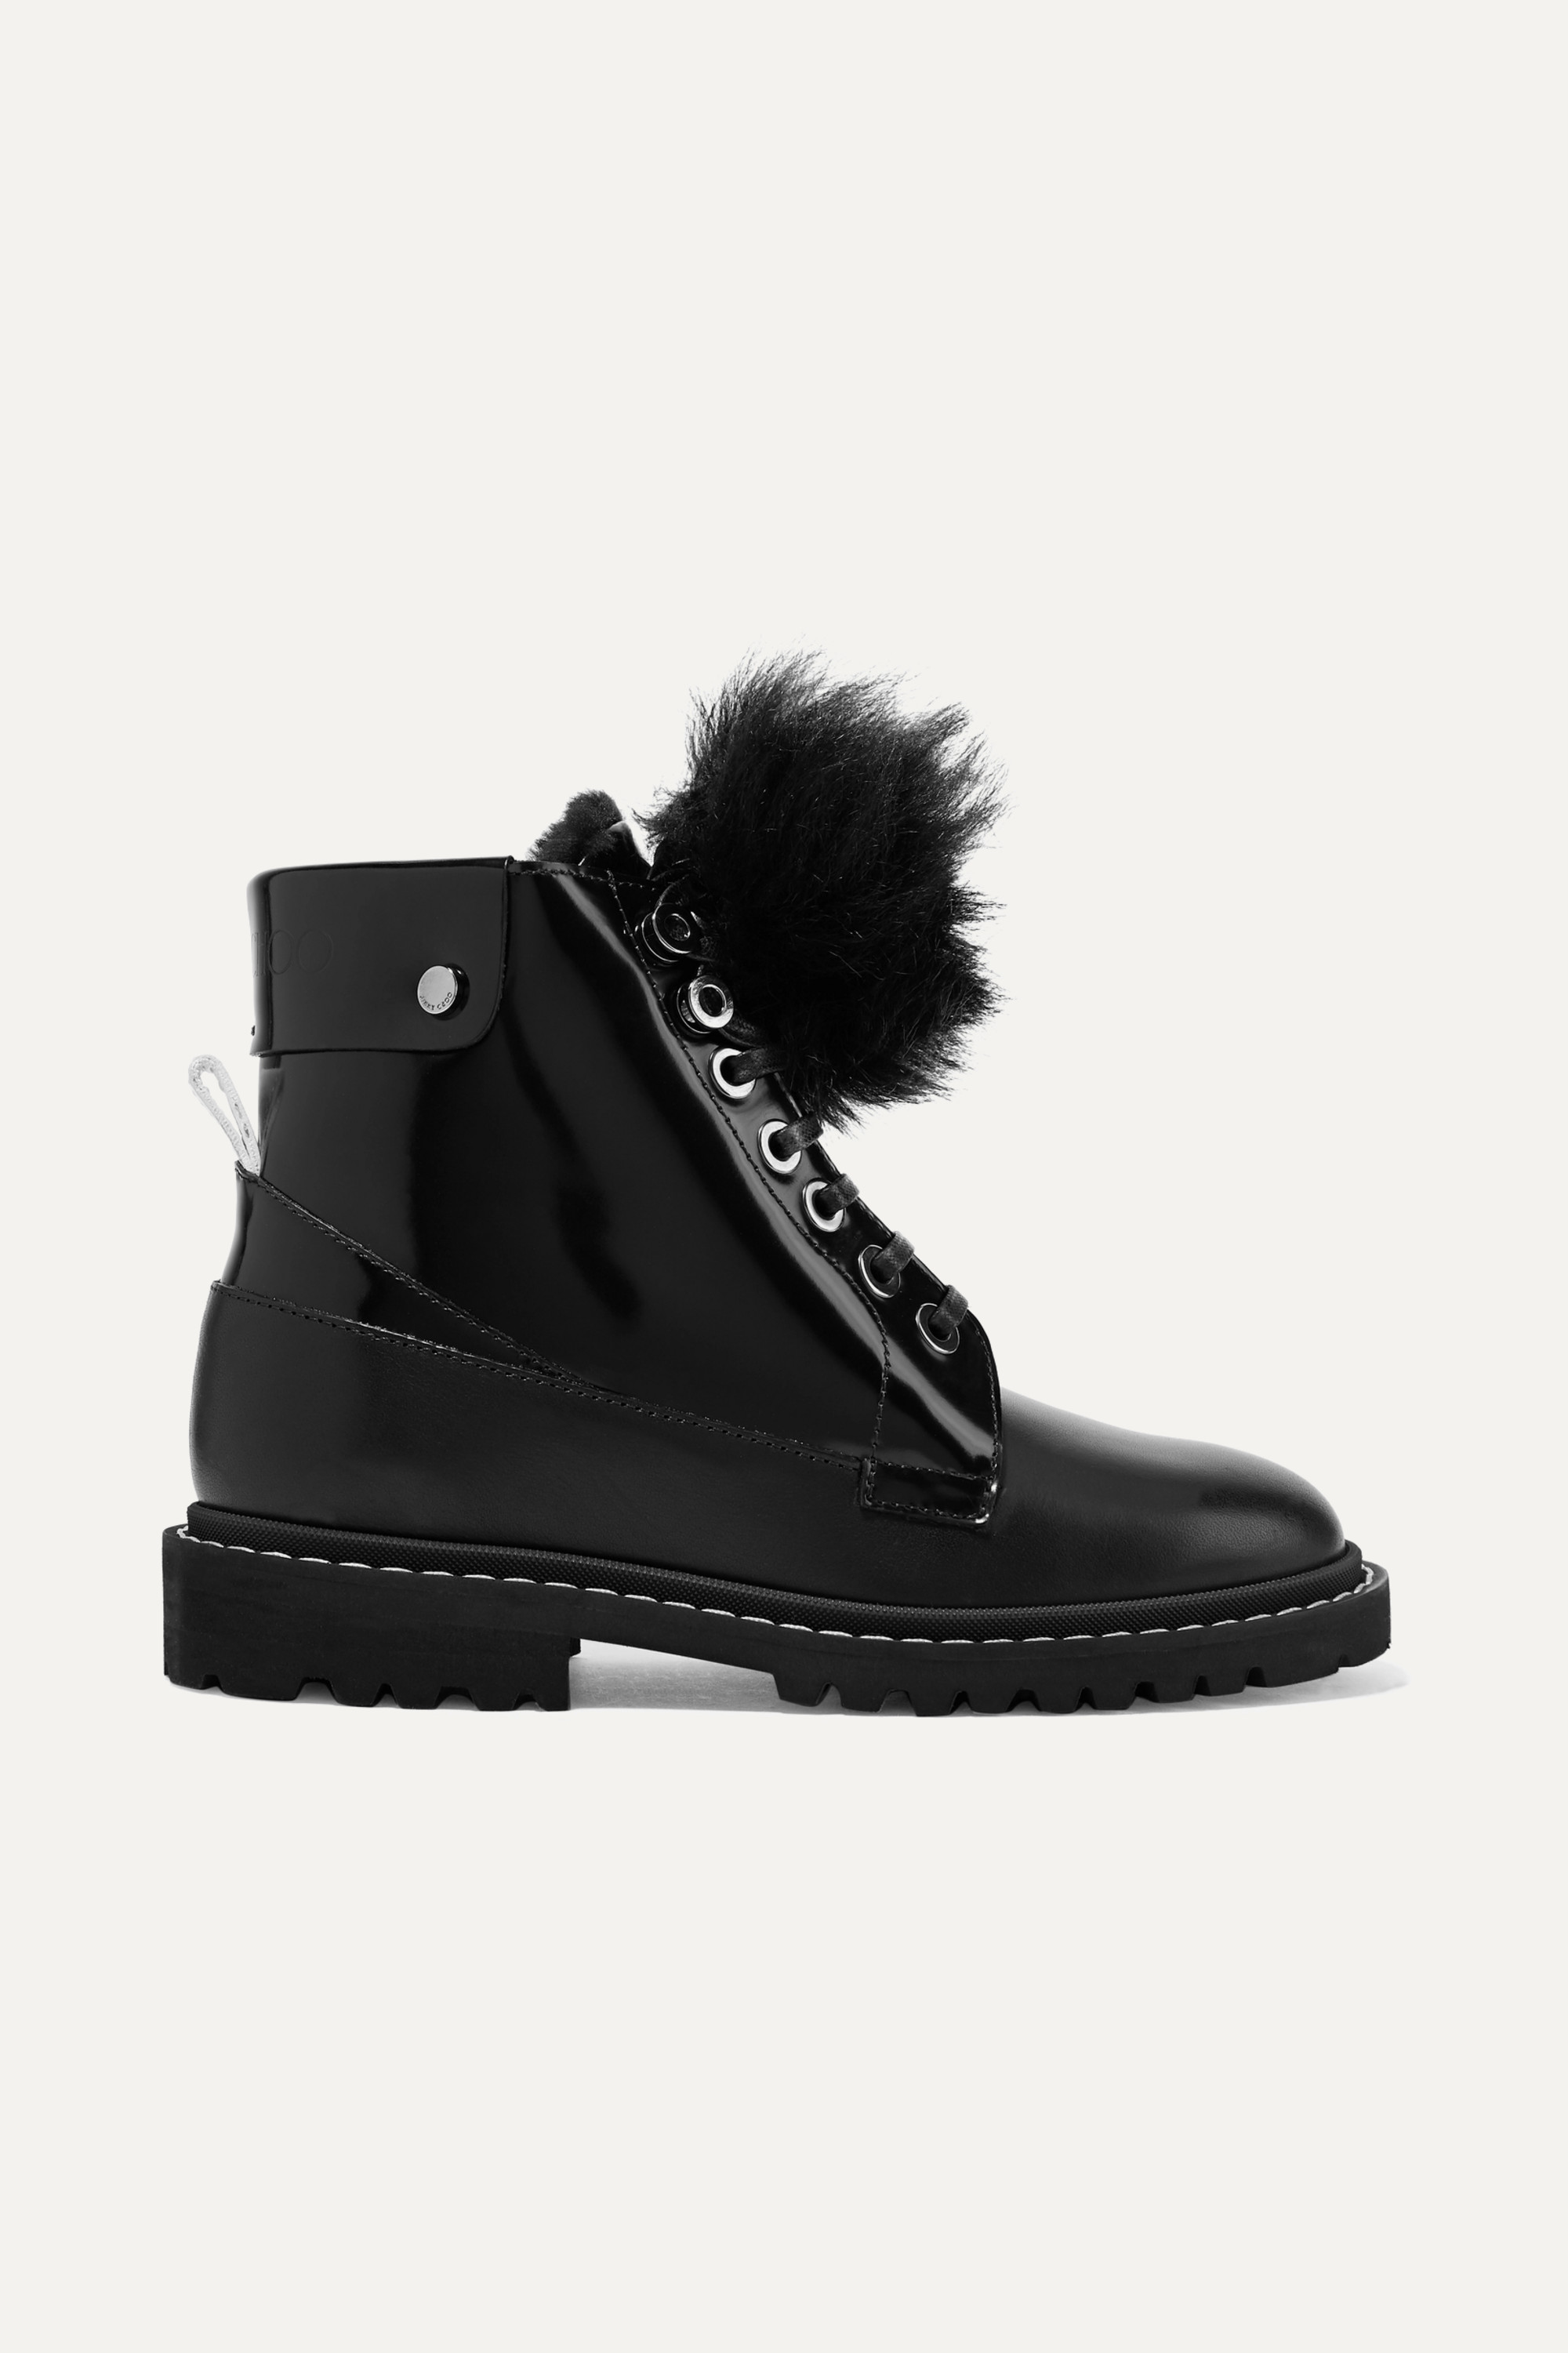 Black The Voyager Snow heated shearling